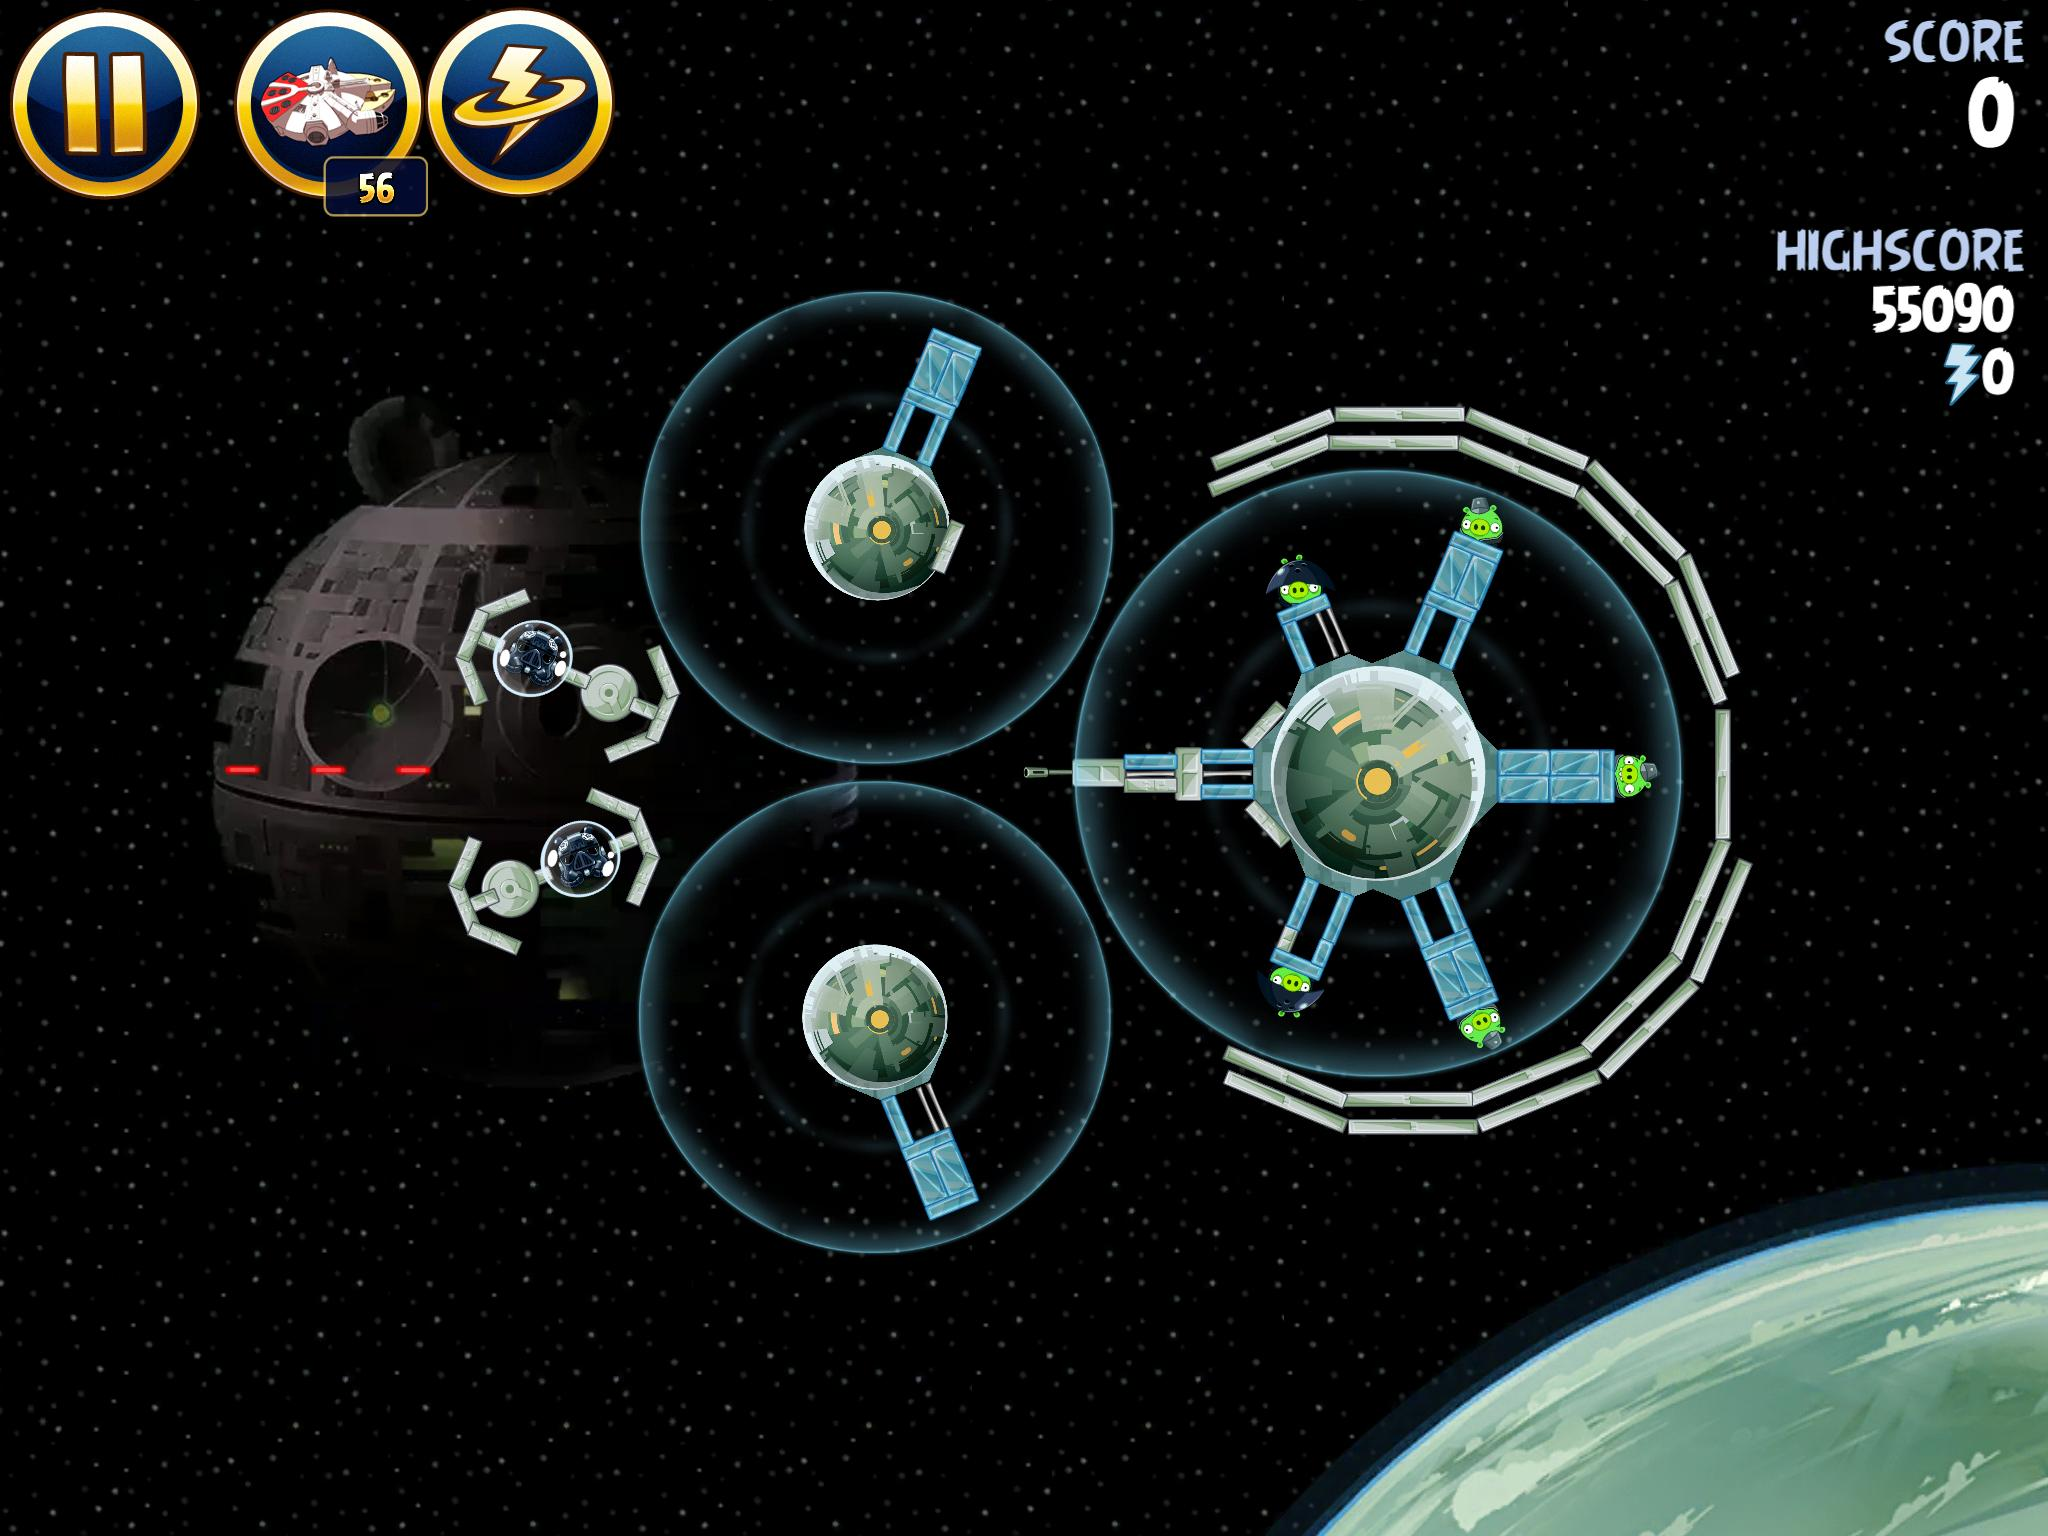 Death Star 2 6-11 (Angry Birds Star Wars)